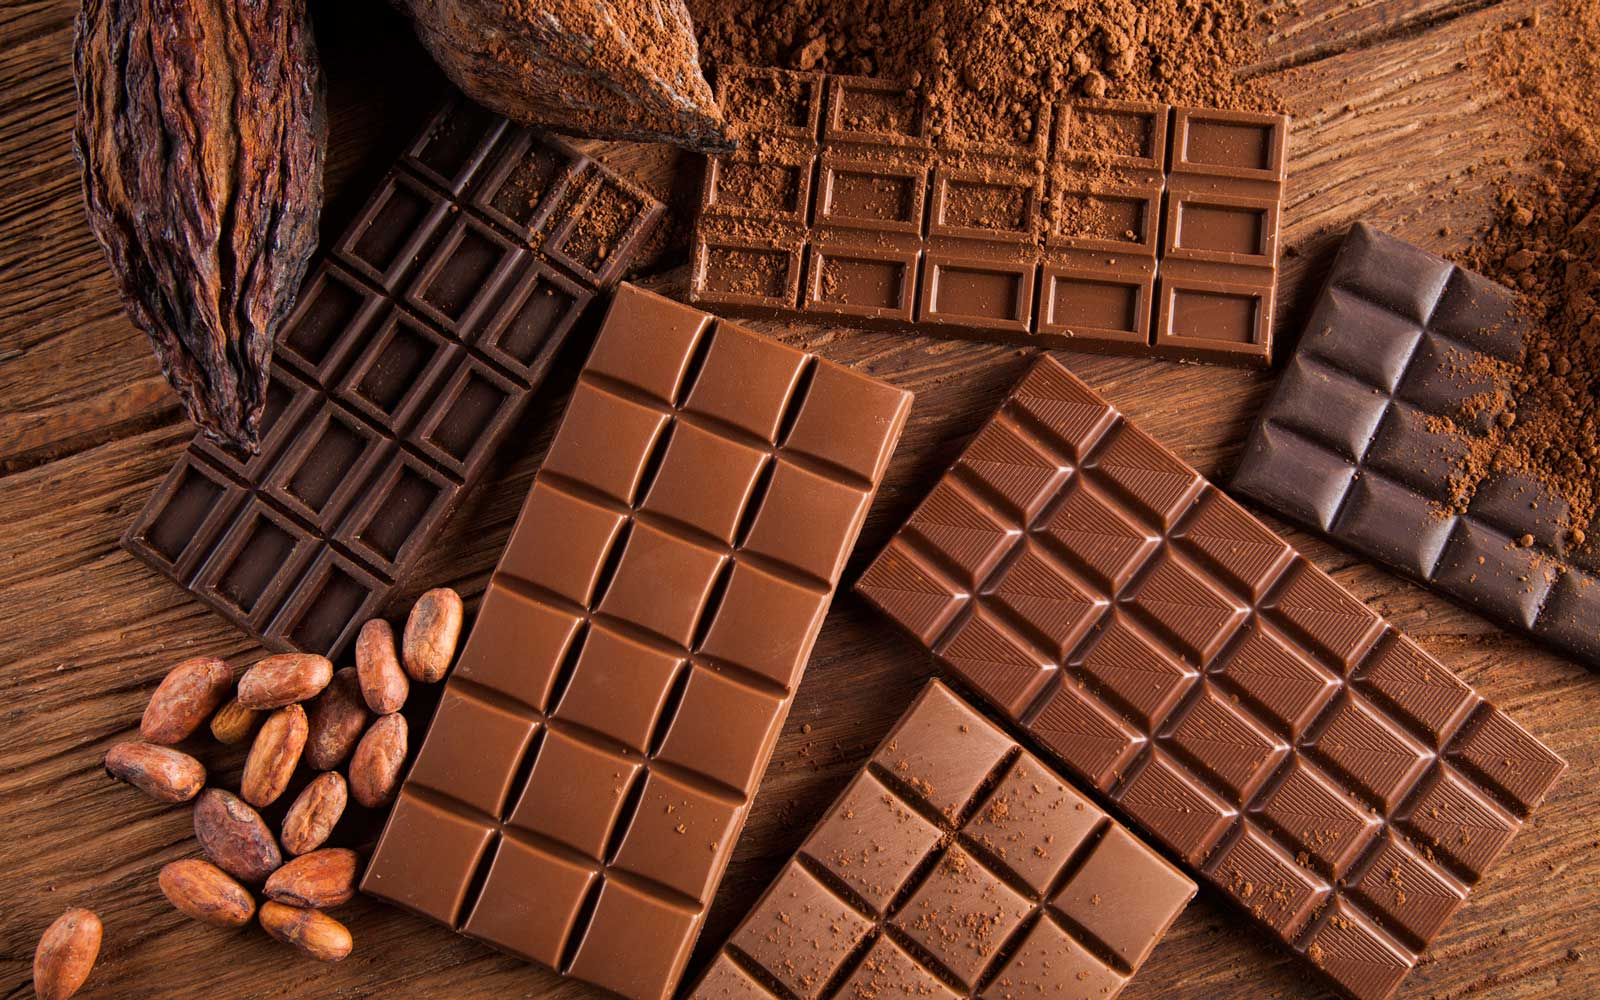 New Study Confirms What We Already Knew: Eating Chocolate Reduces Stress